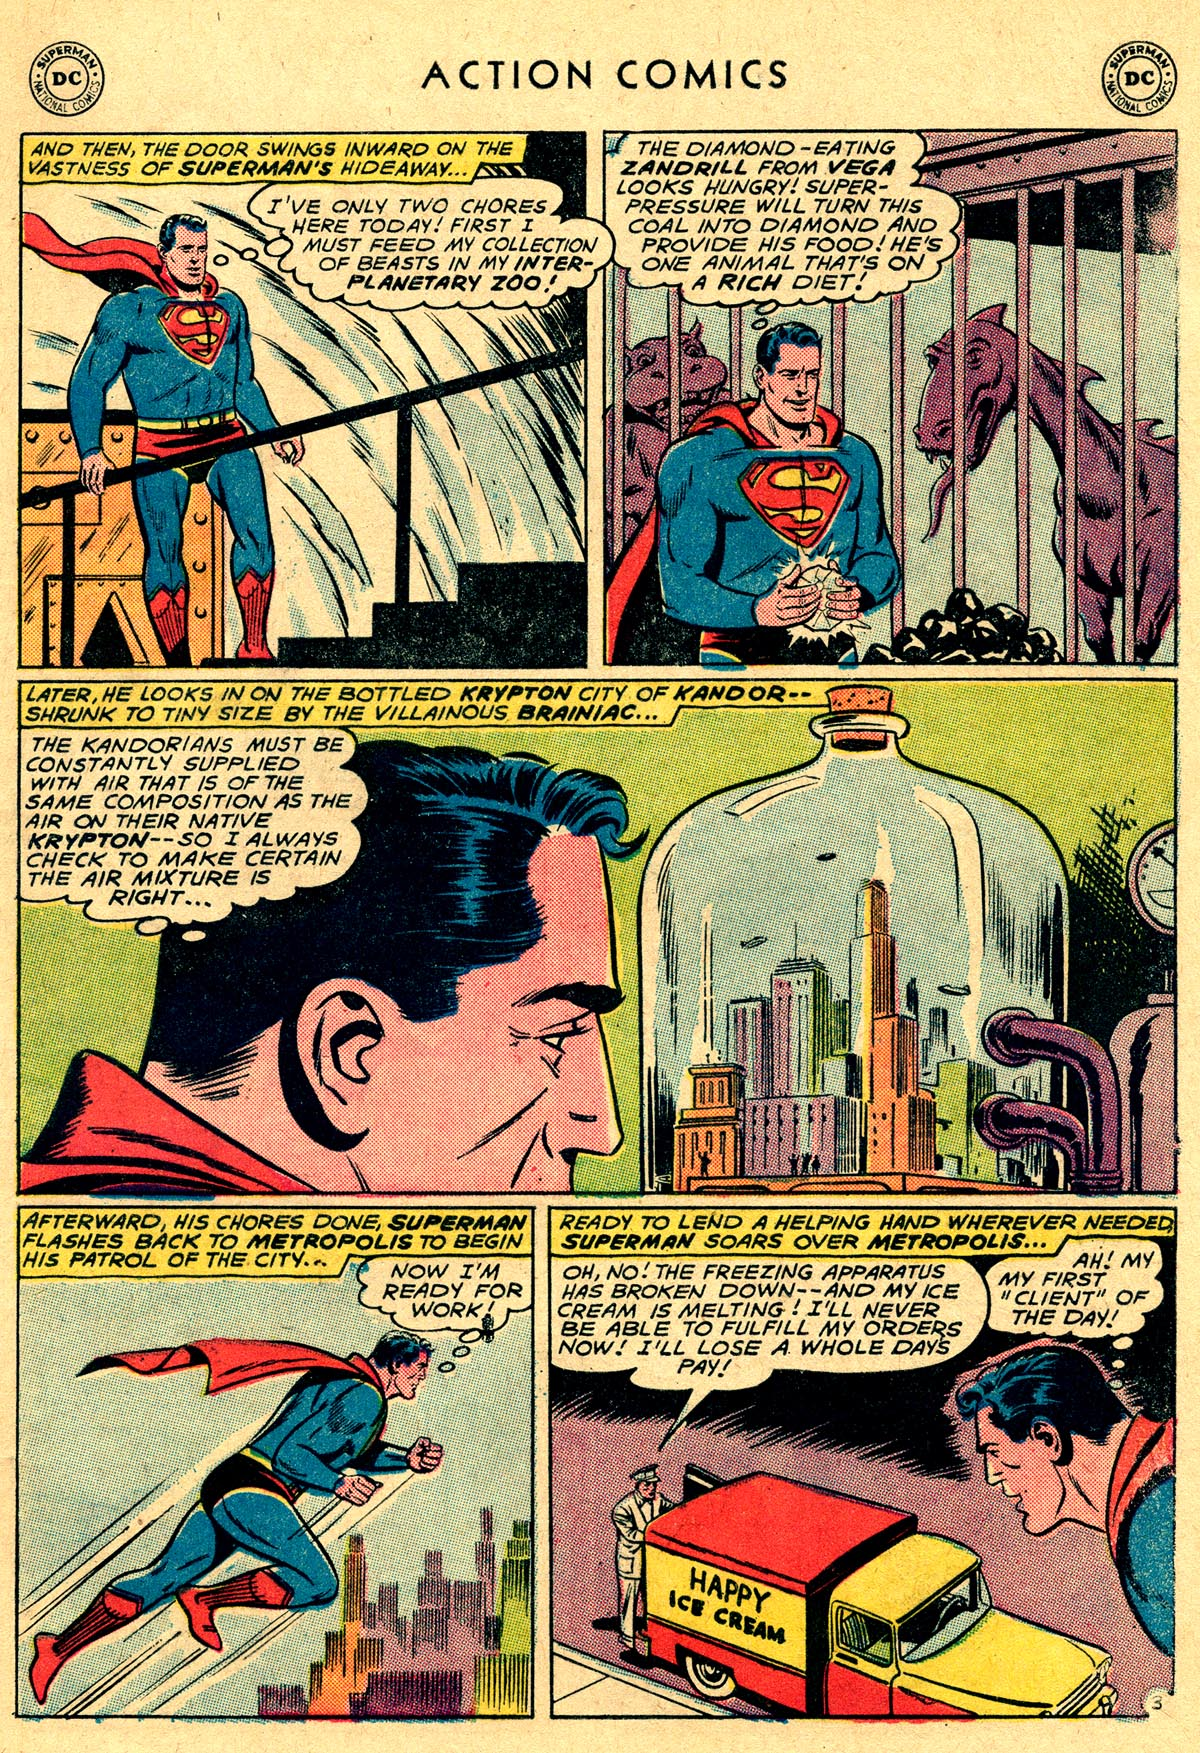 Action Comics (1938) 282 Page 4